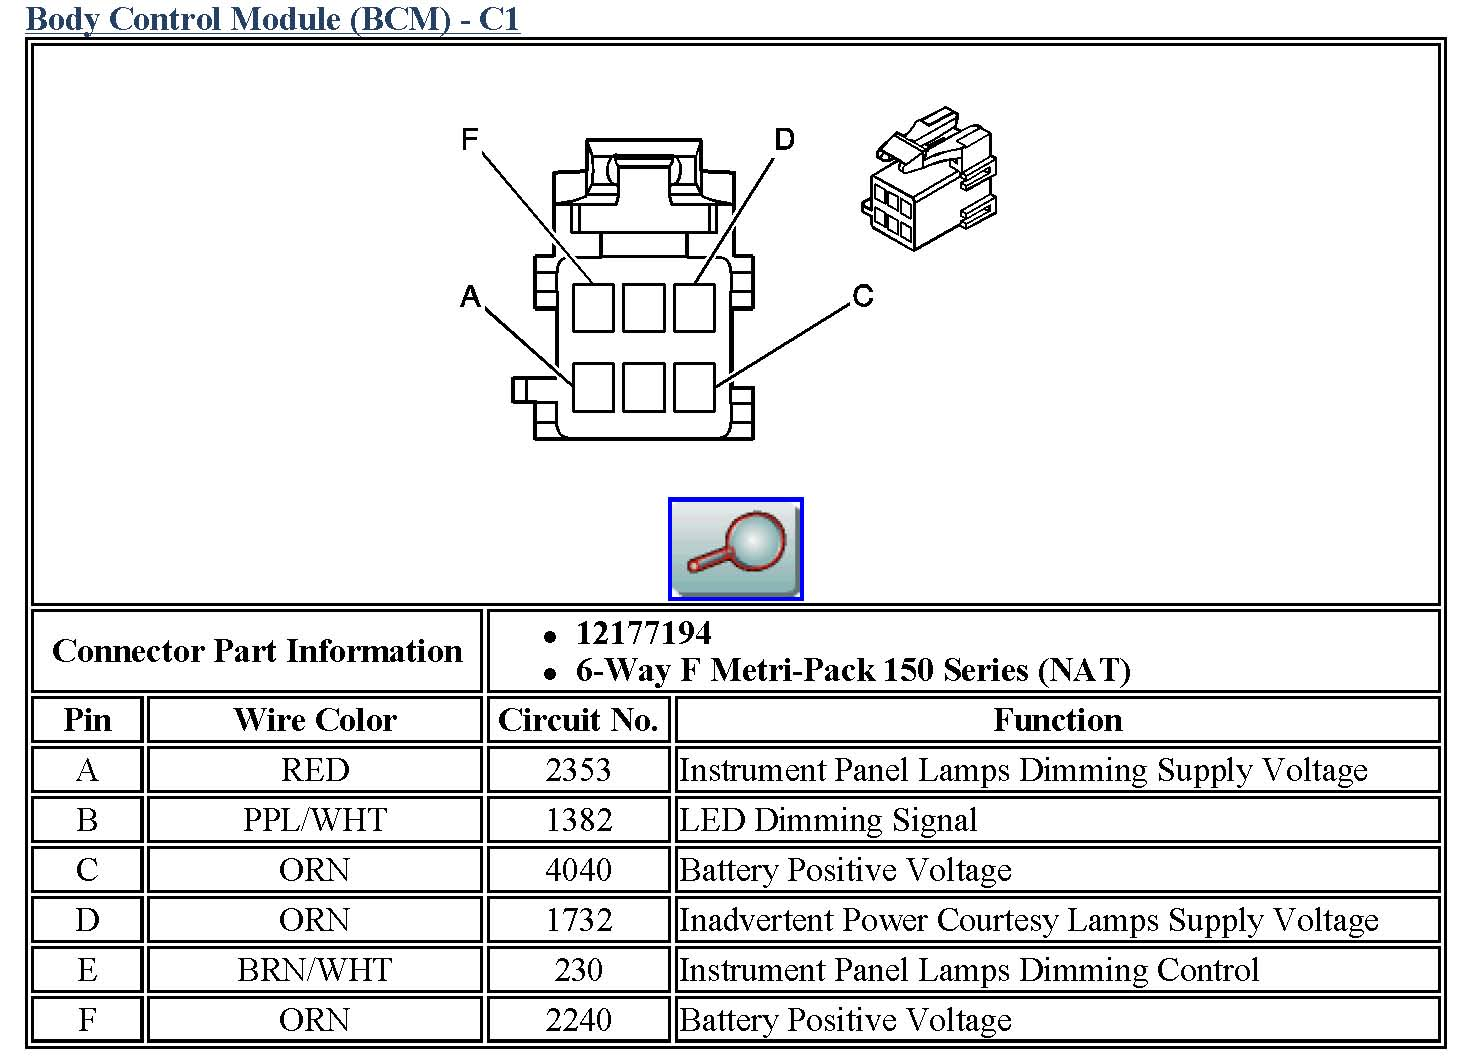 03bcmc1 bcm basics 101 (03 06) gm body control module wiring diagram at sewacar.co